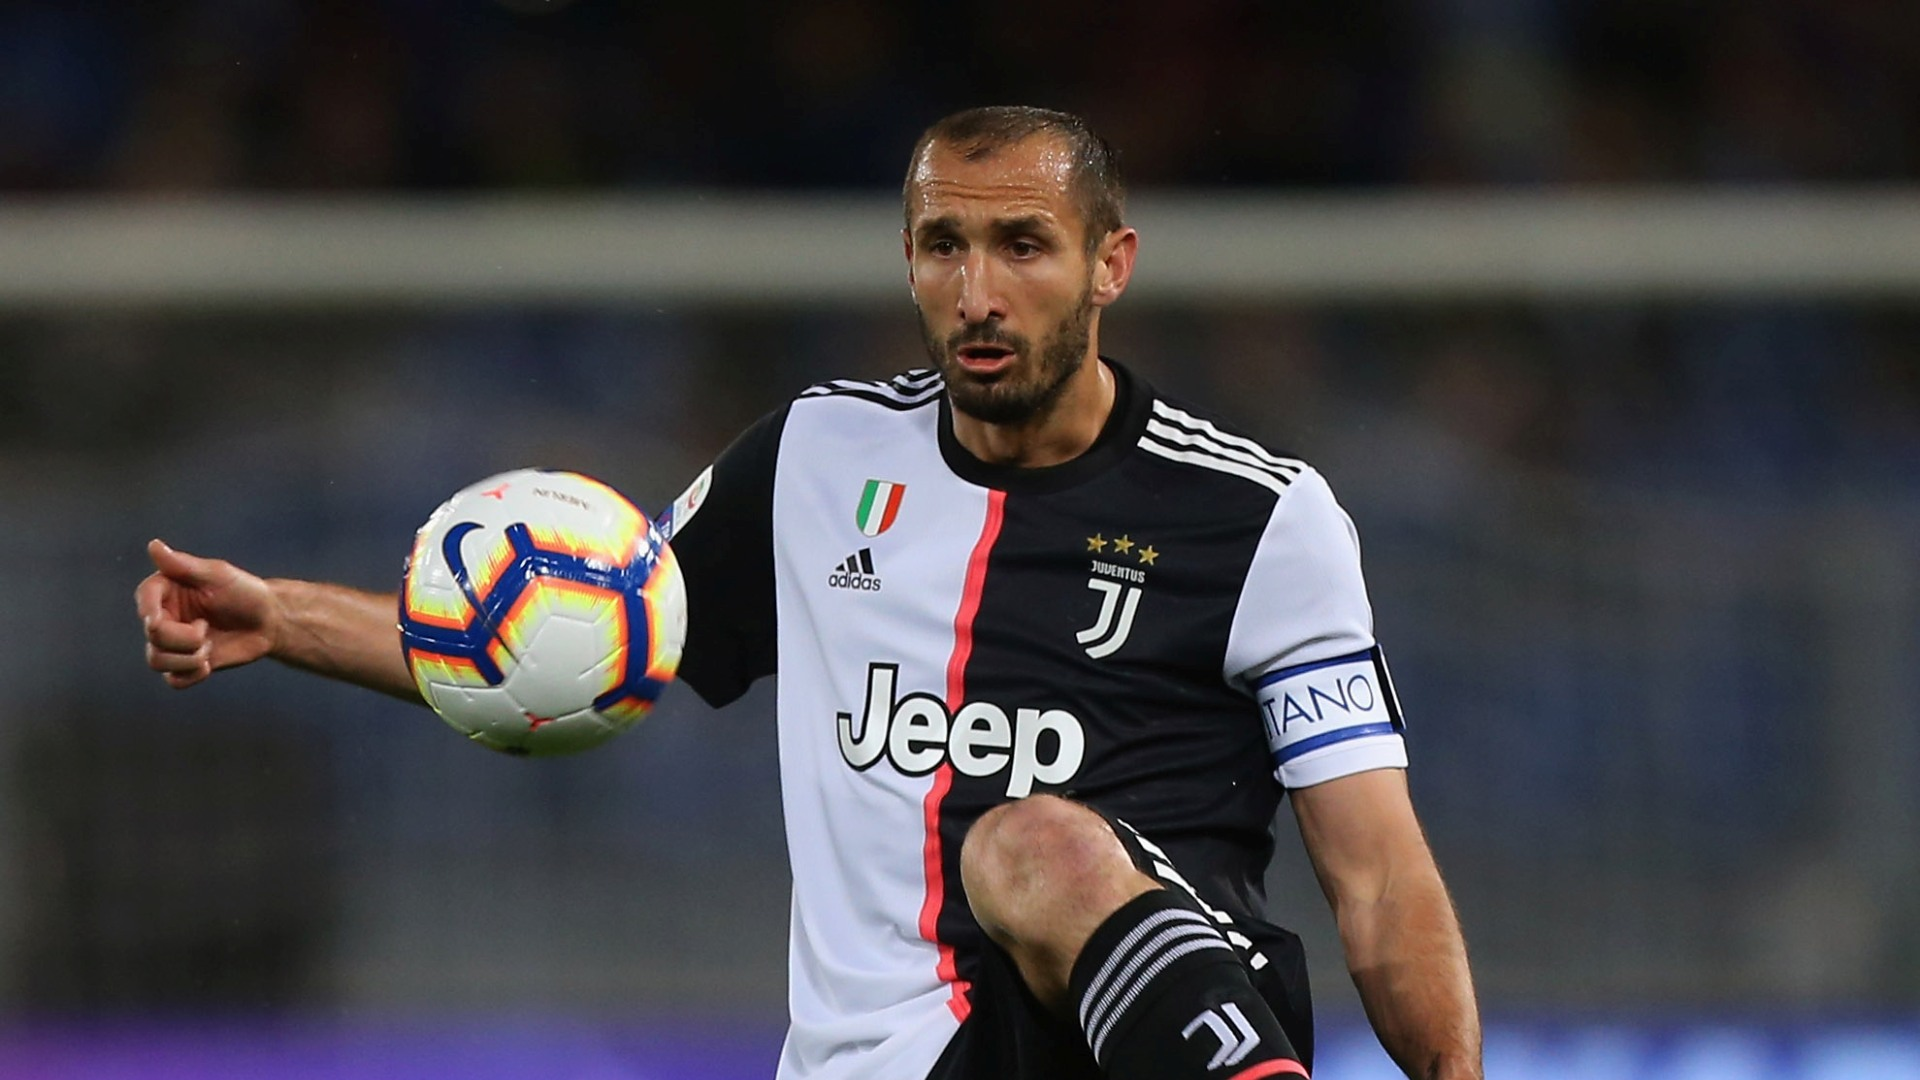 Infortunio per Chiellini, a rischio la tournée in Asia